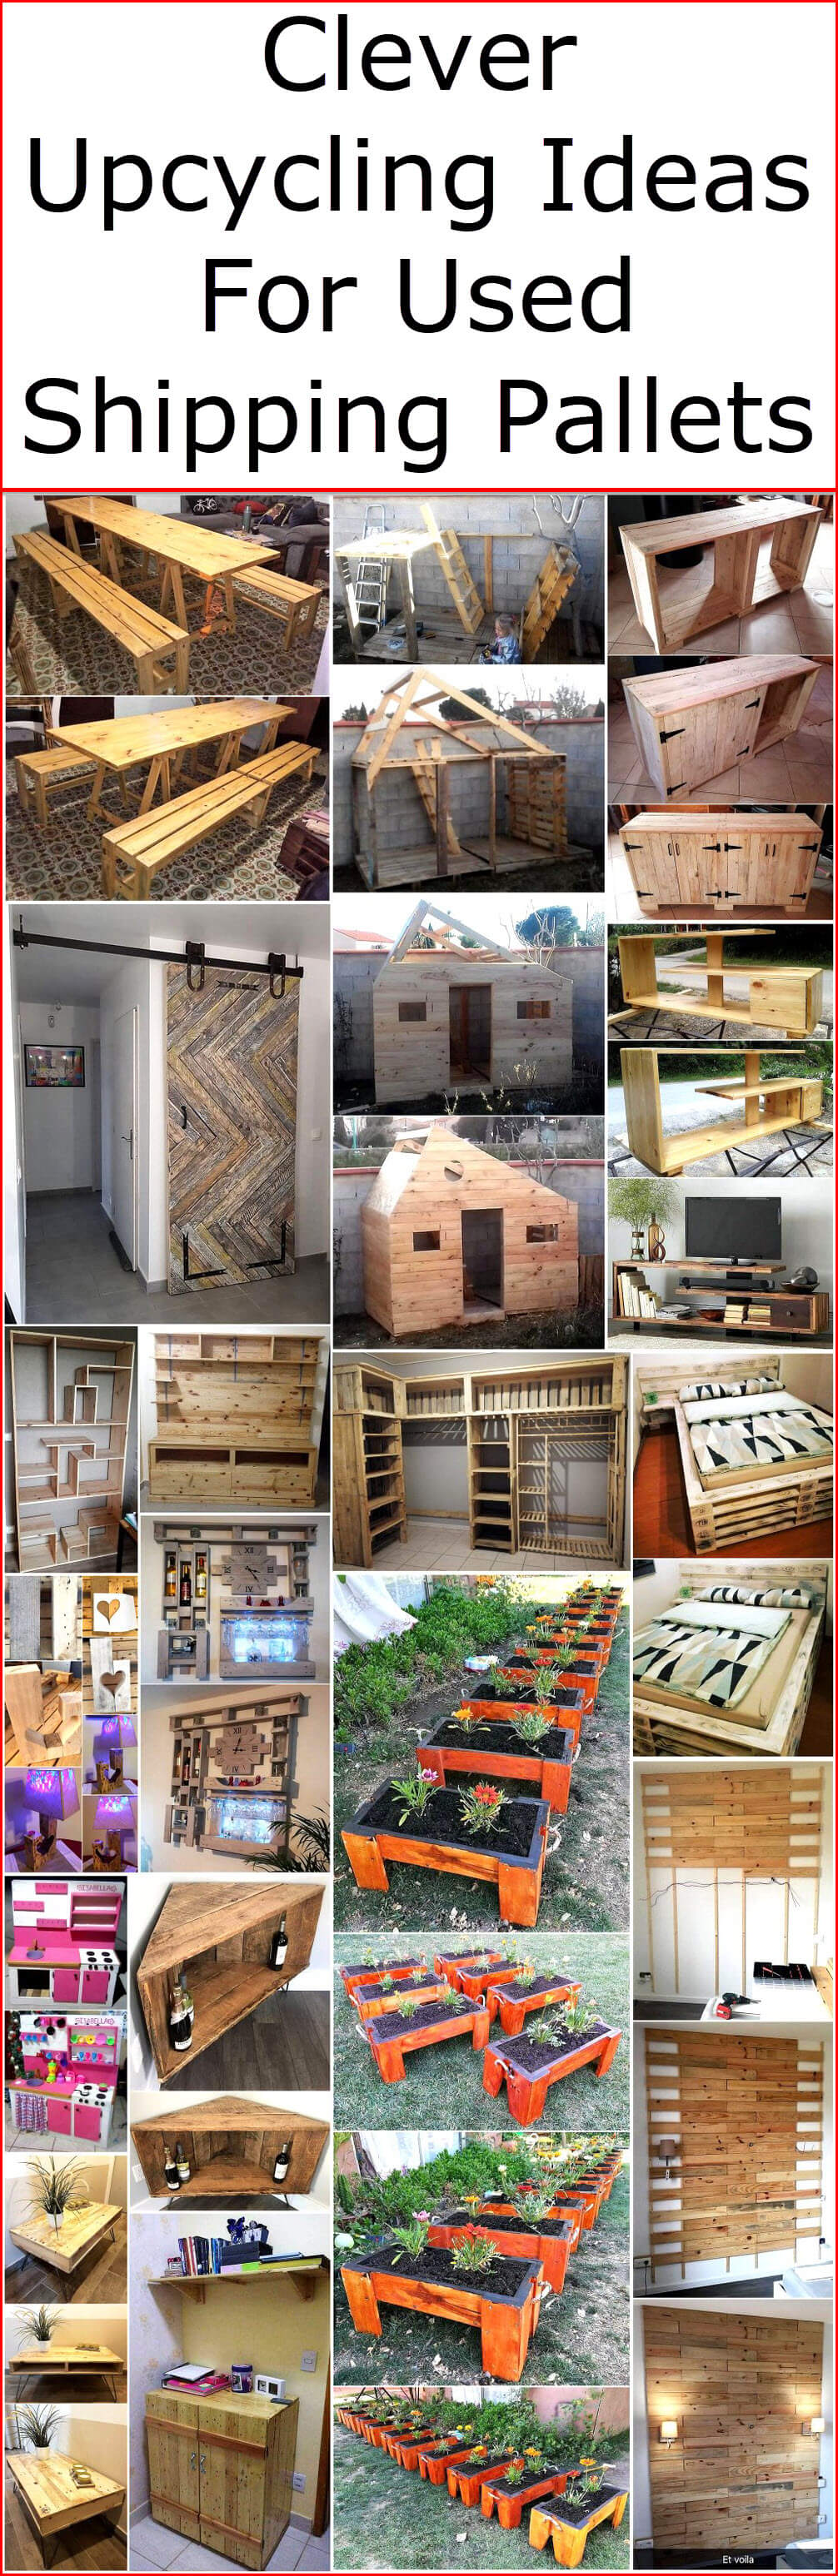 Clever Upcycling Ideas For Used Shipping Pallets